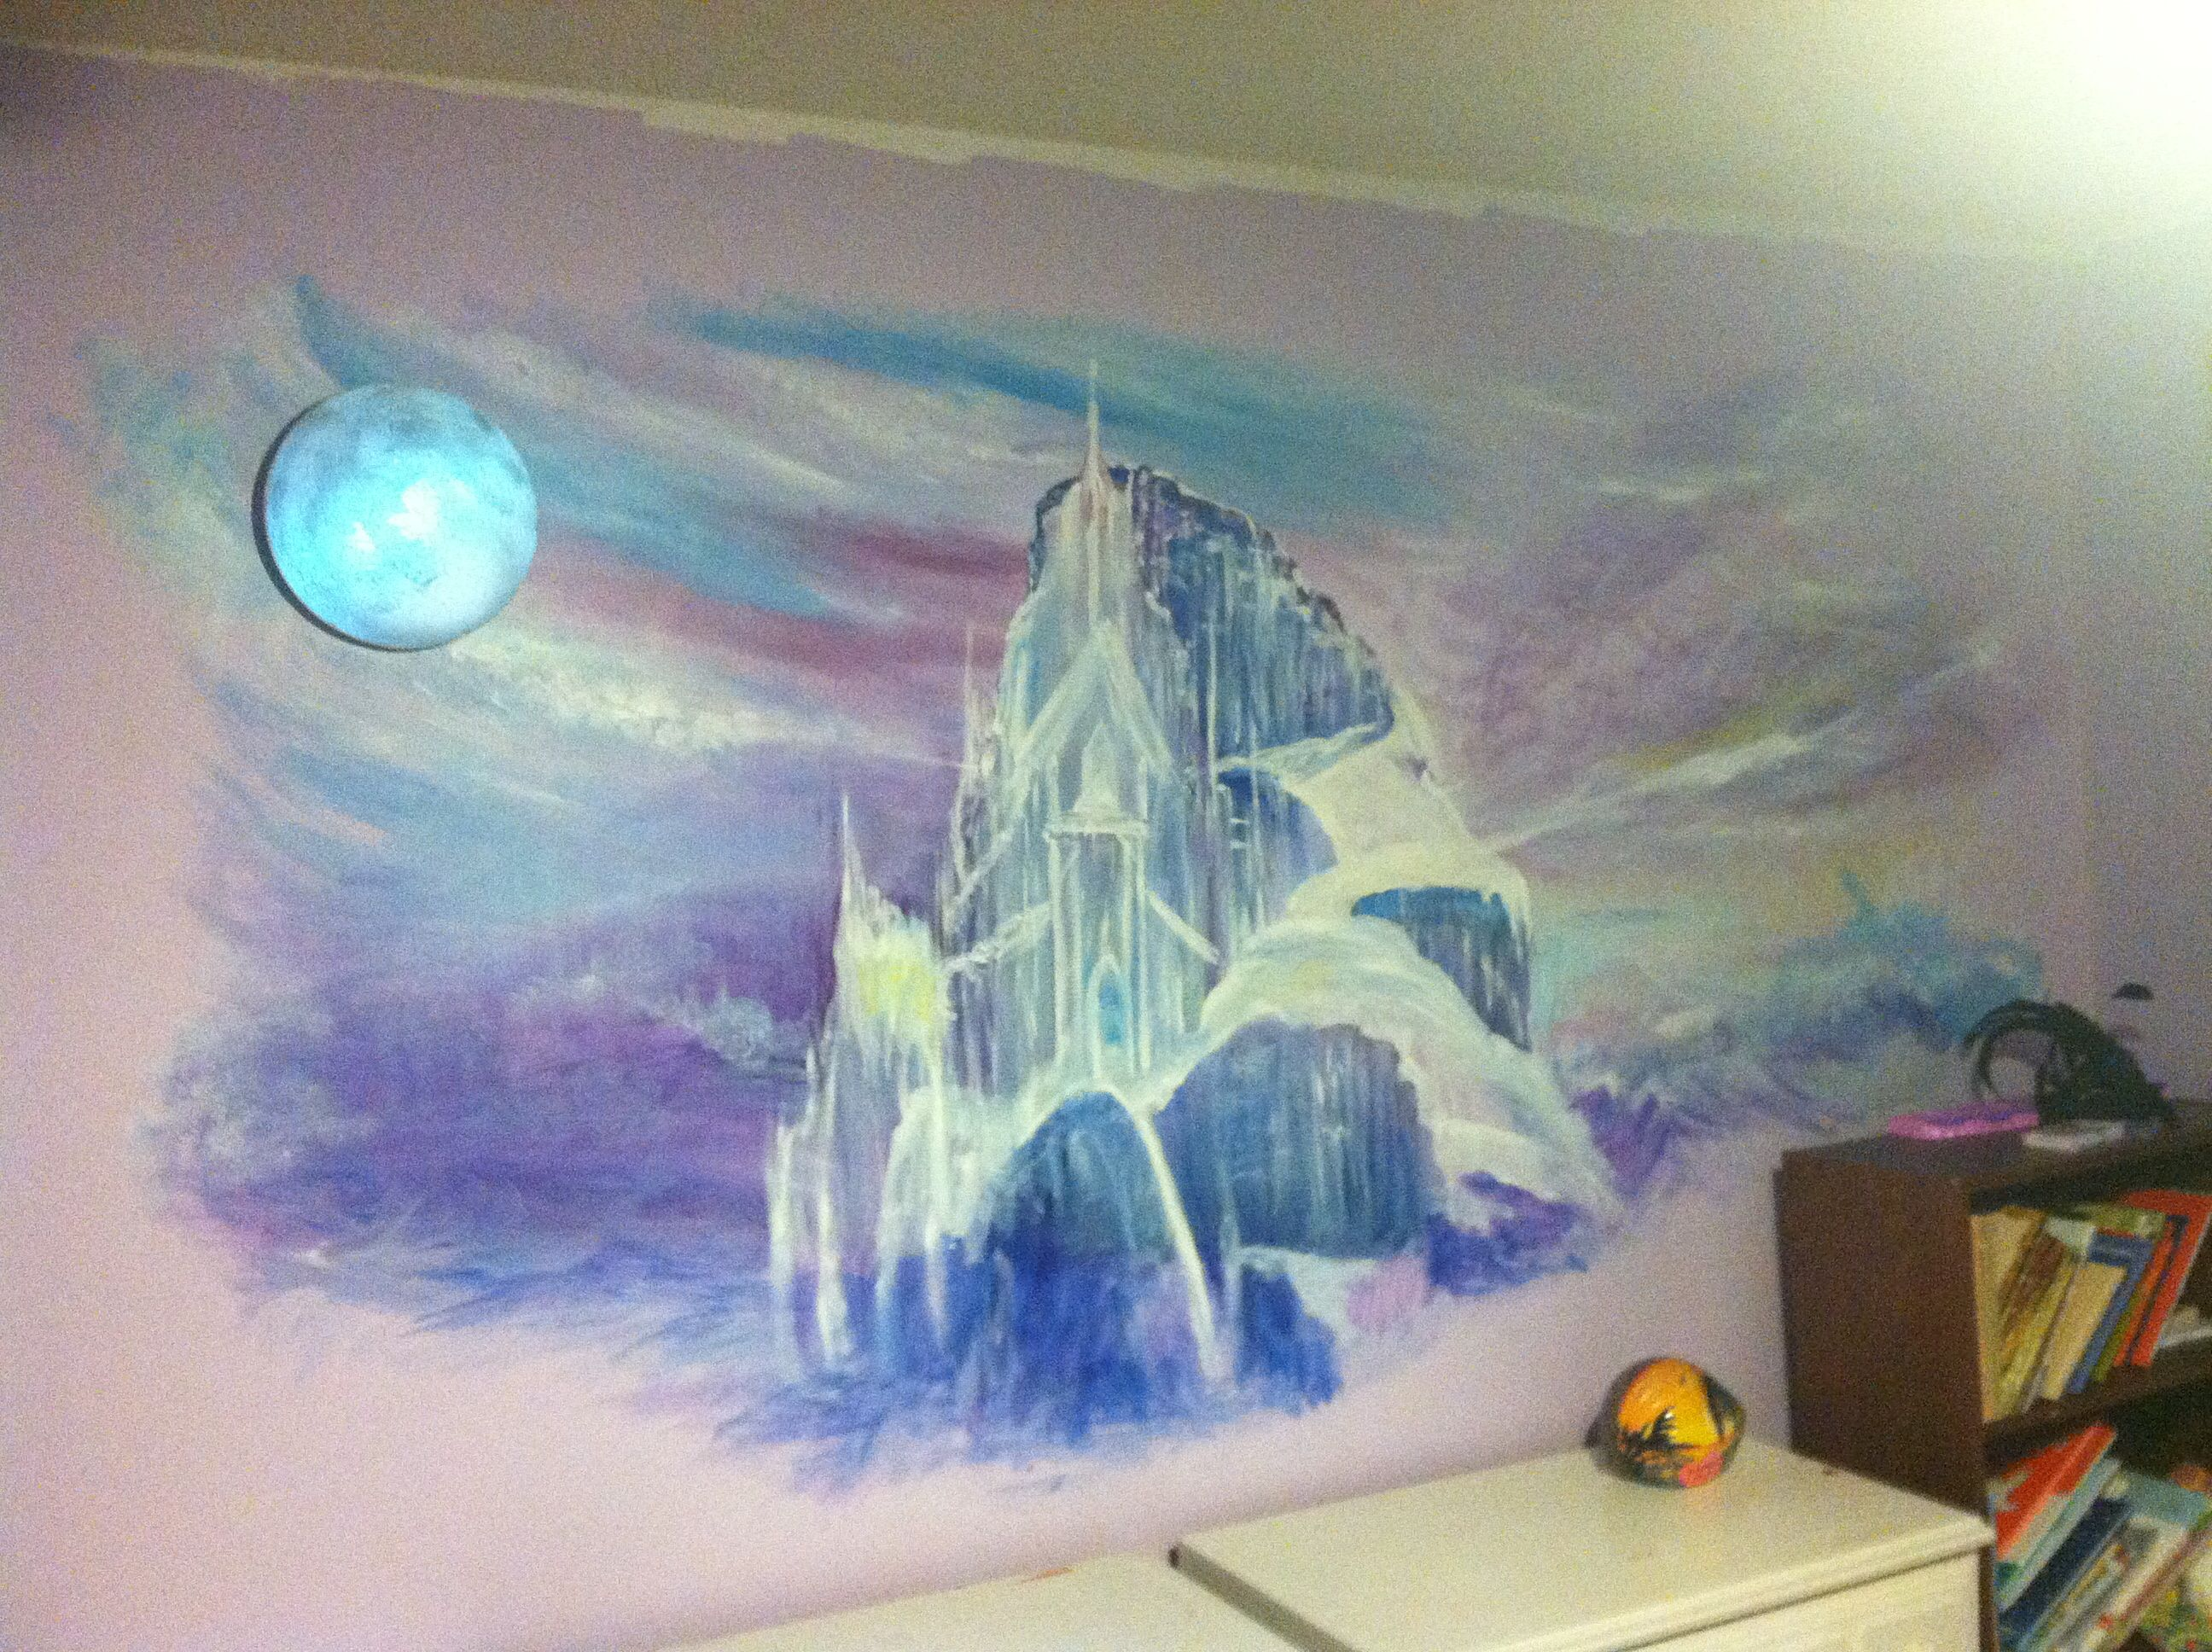 Einin S Room Elsa Frozen Ice Castle